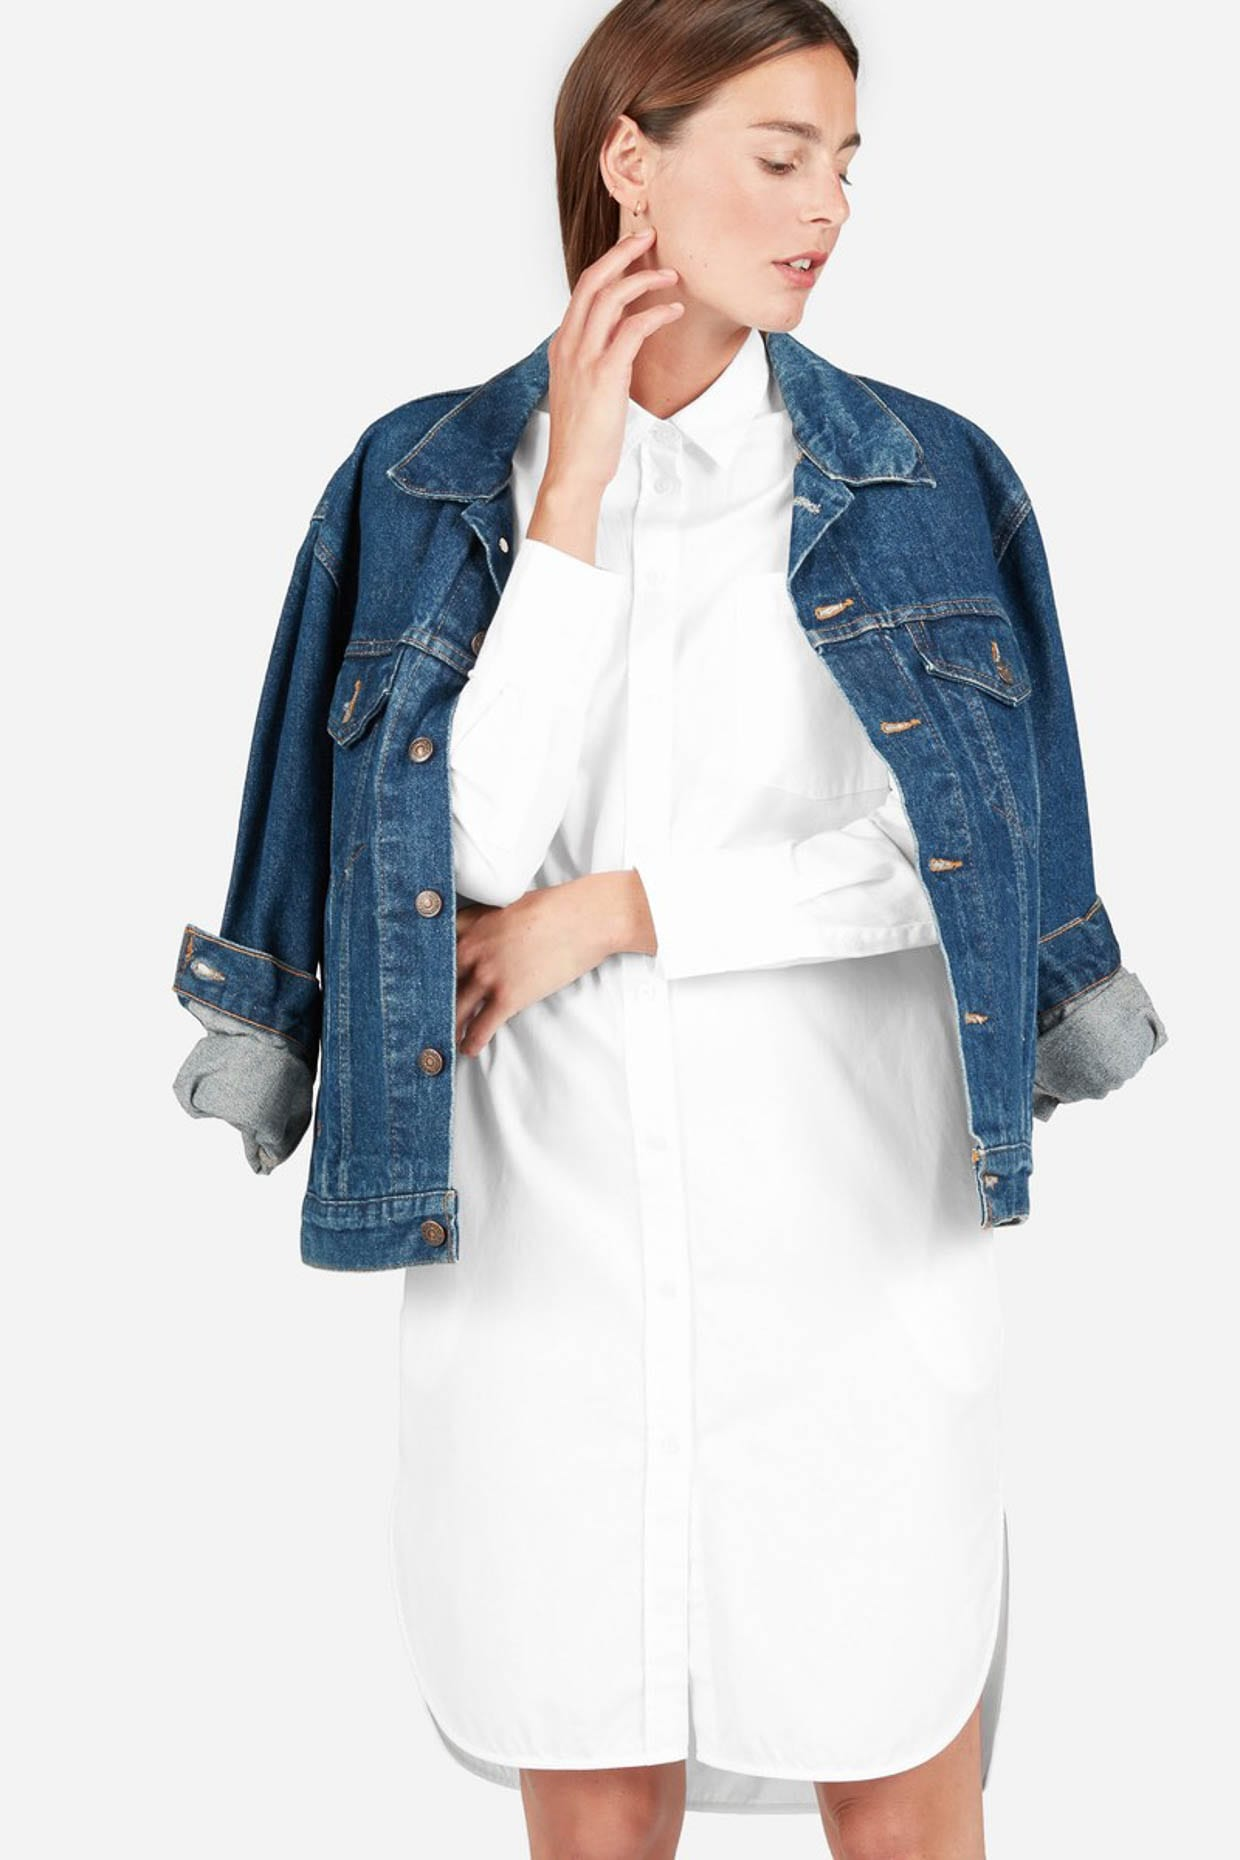 328cc224ae4 Everything To Love At Everlane - Weekly Weakness - Poor Little It Girl